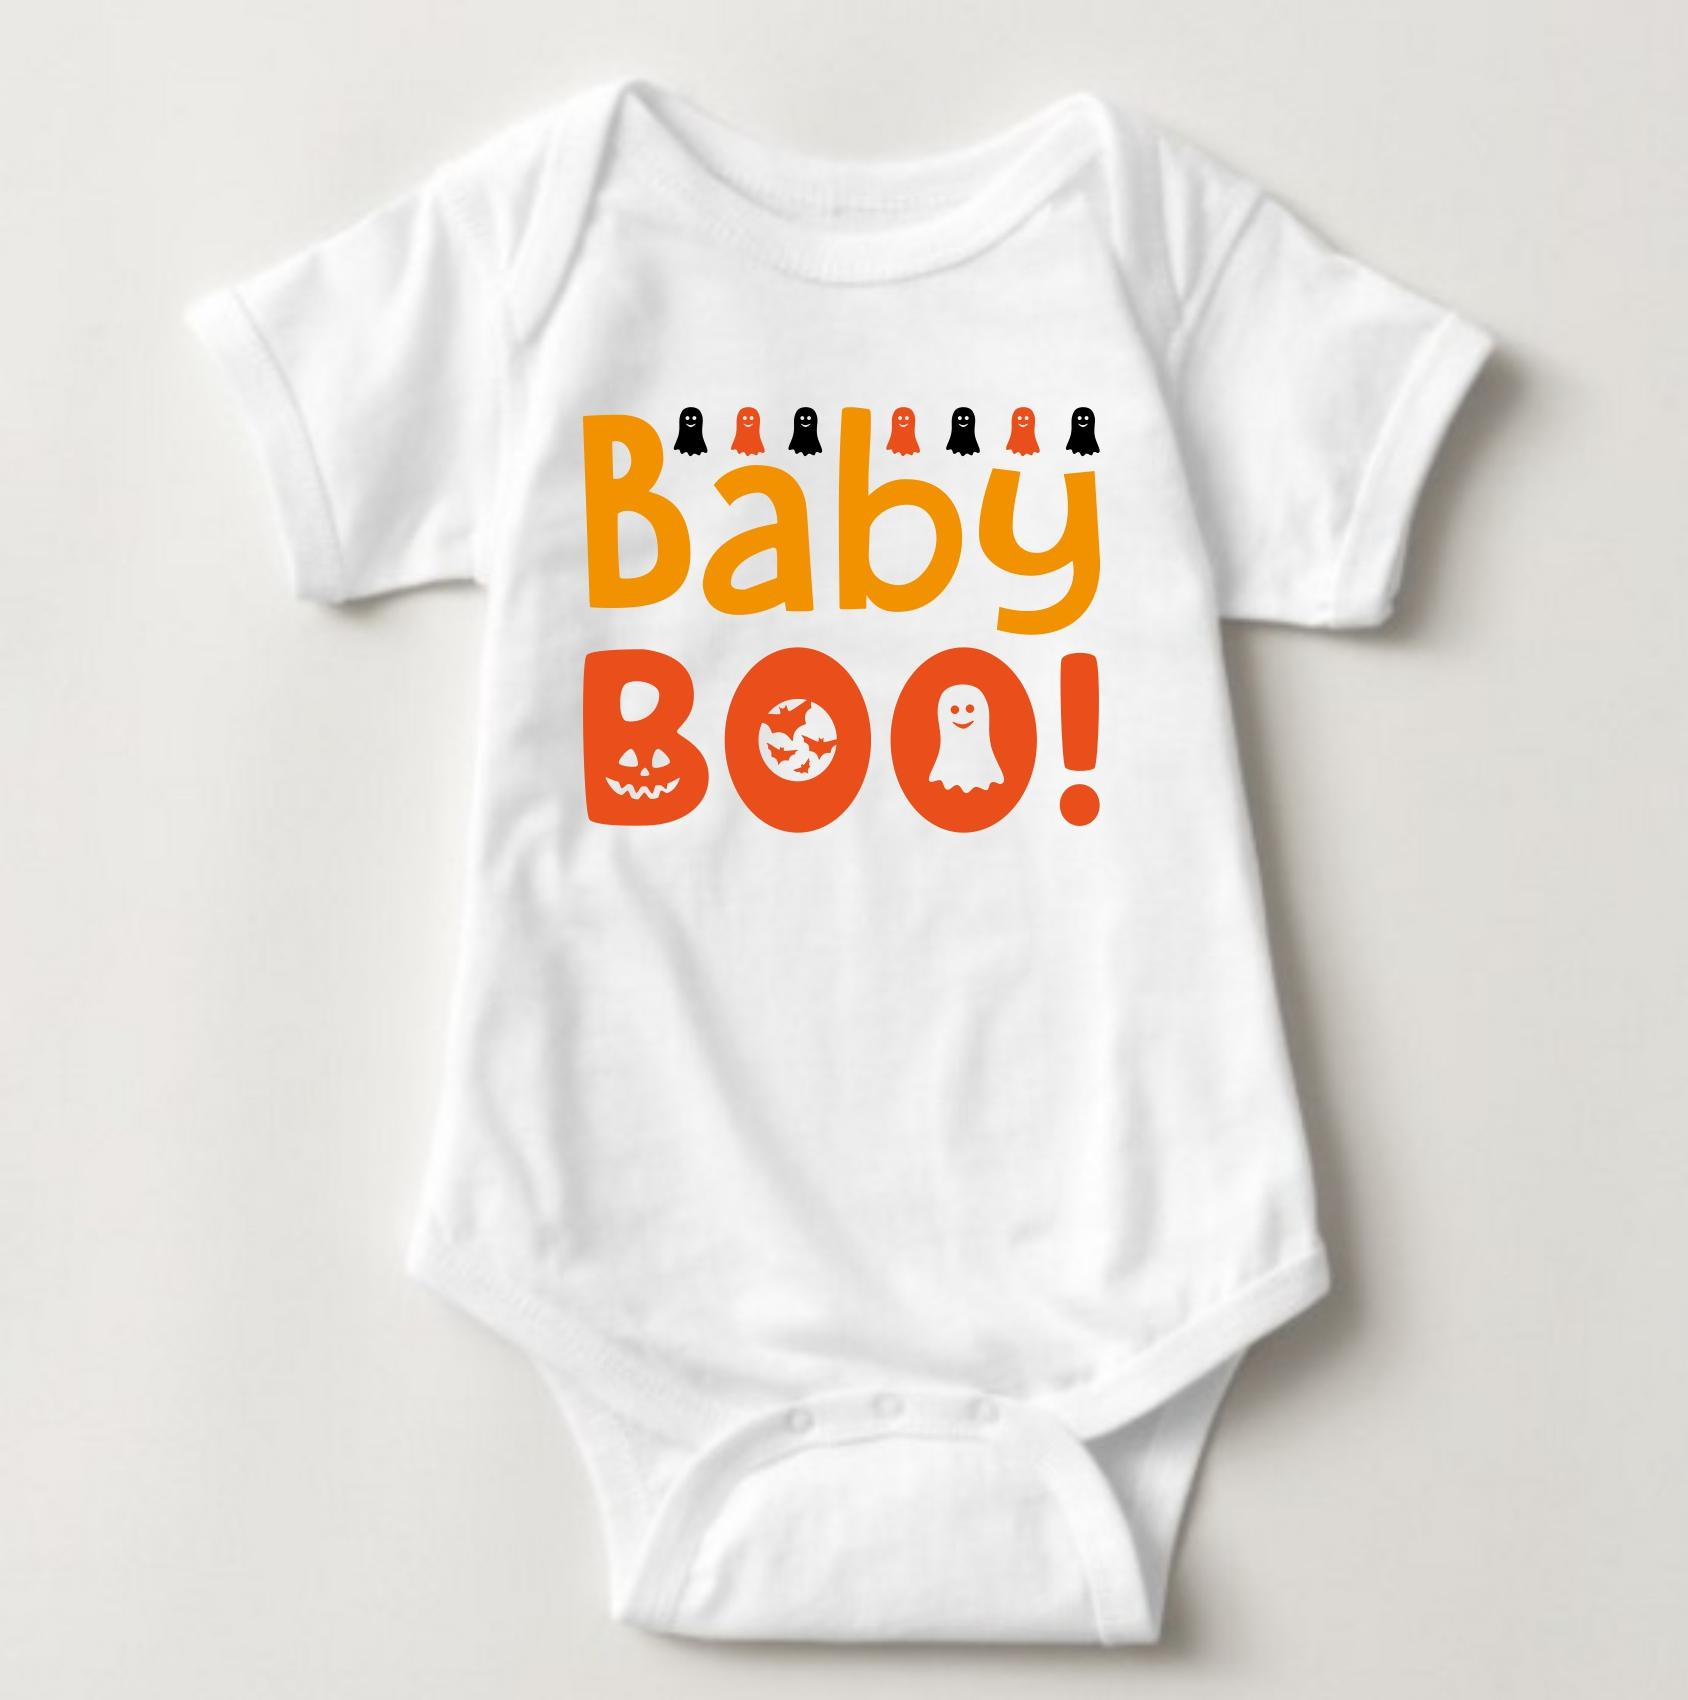 Onesie For Sale Baby Onesies Online Brands Prices Reviews In Carters 3 Pieces Orange Mickey Mouse Halloween Boo